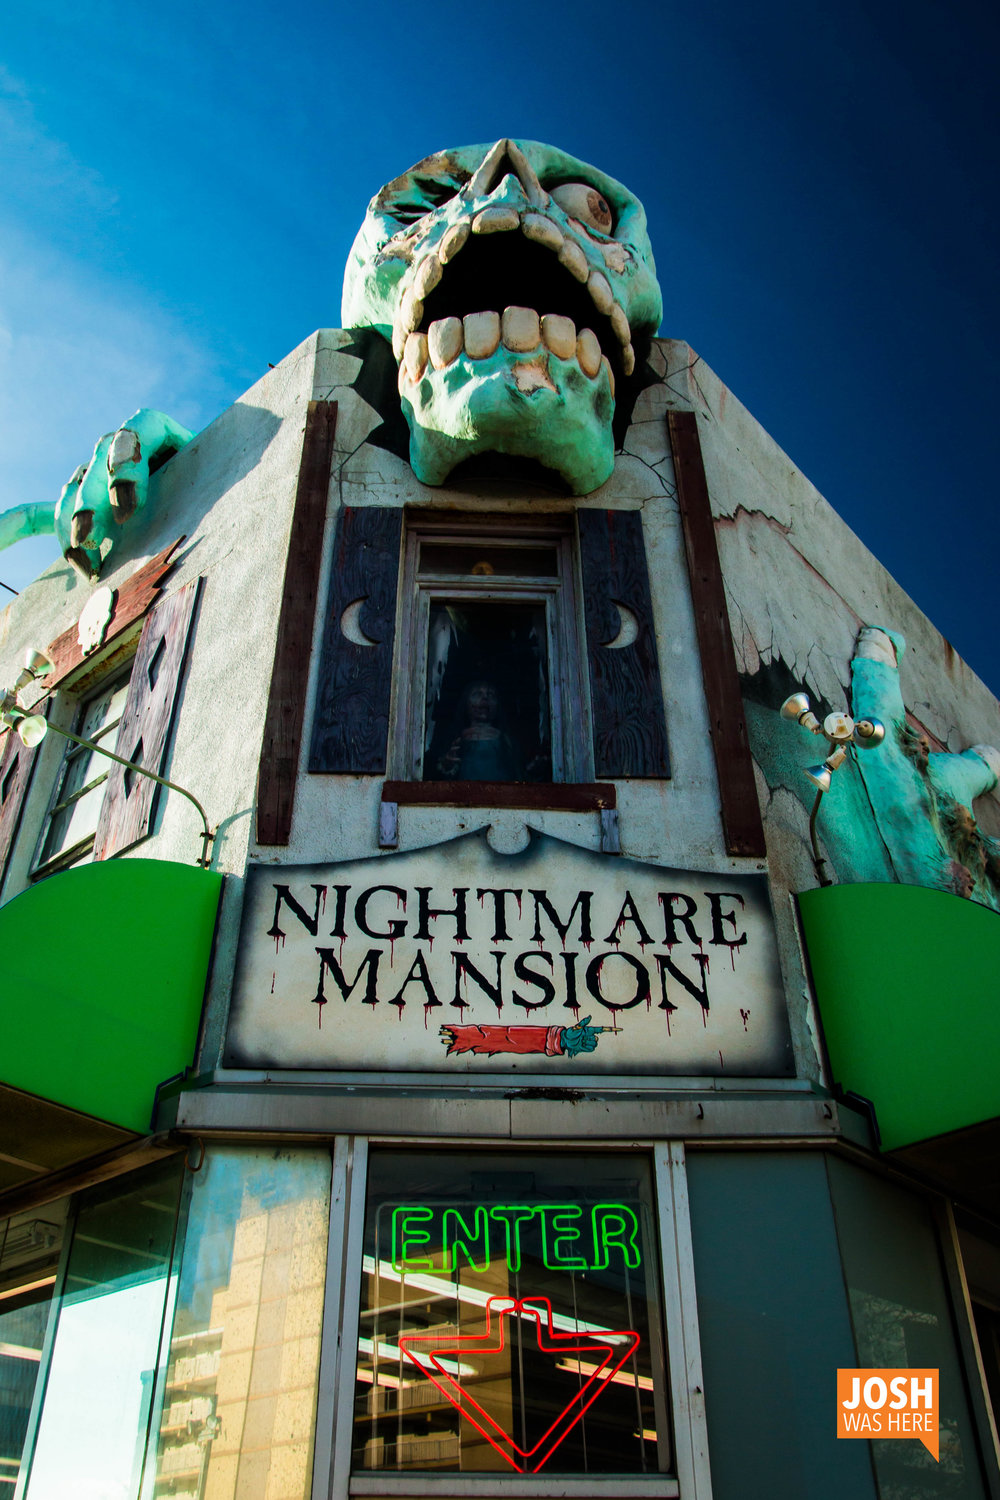 Enter Nightmare Mansion